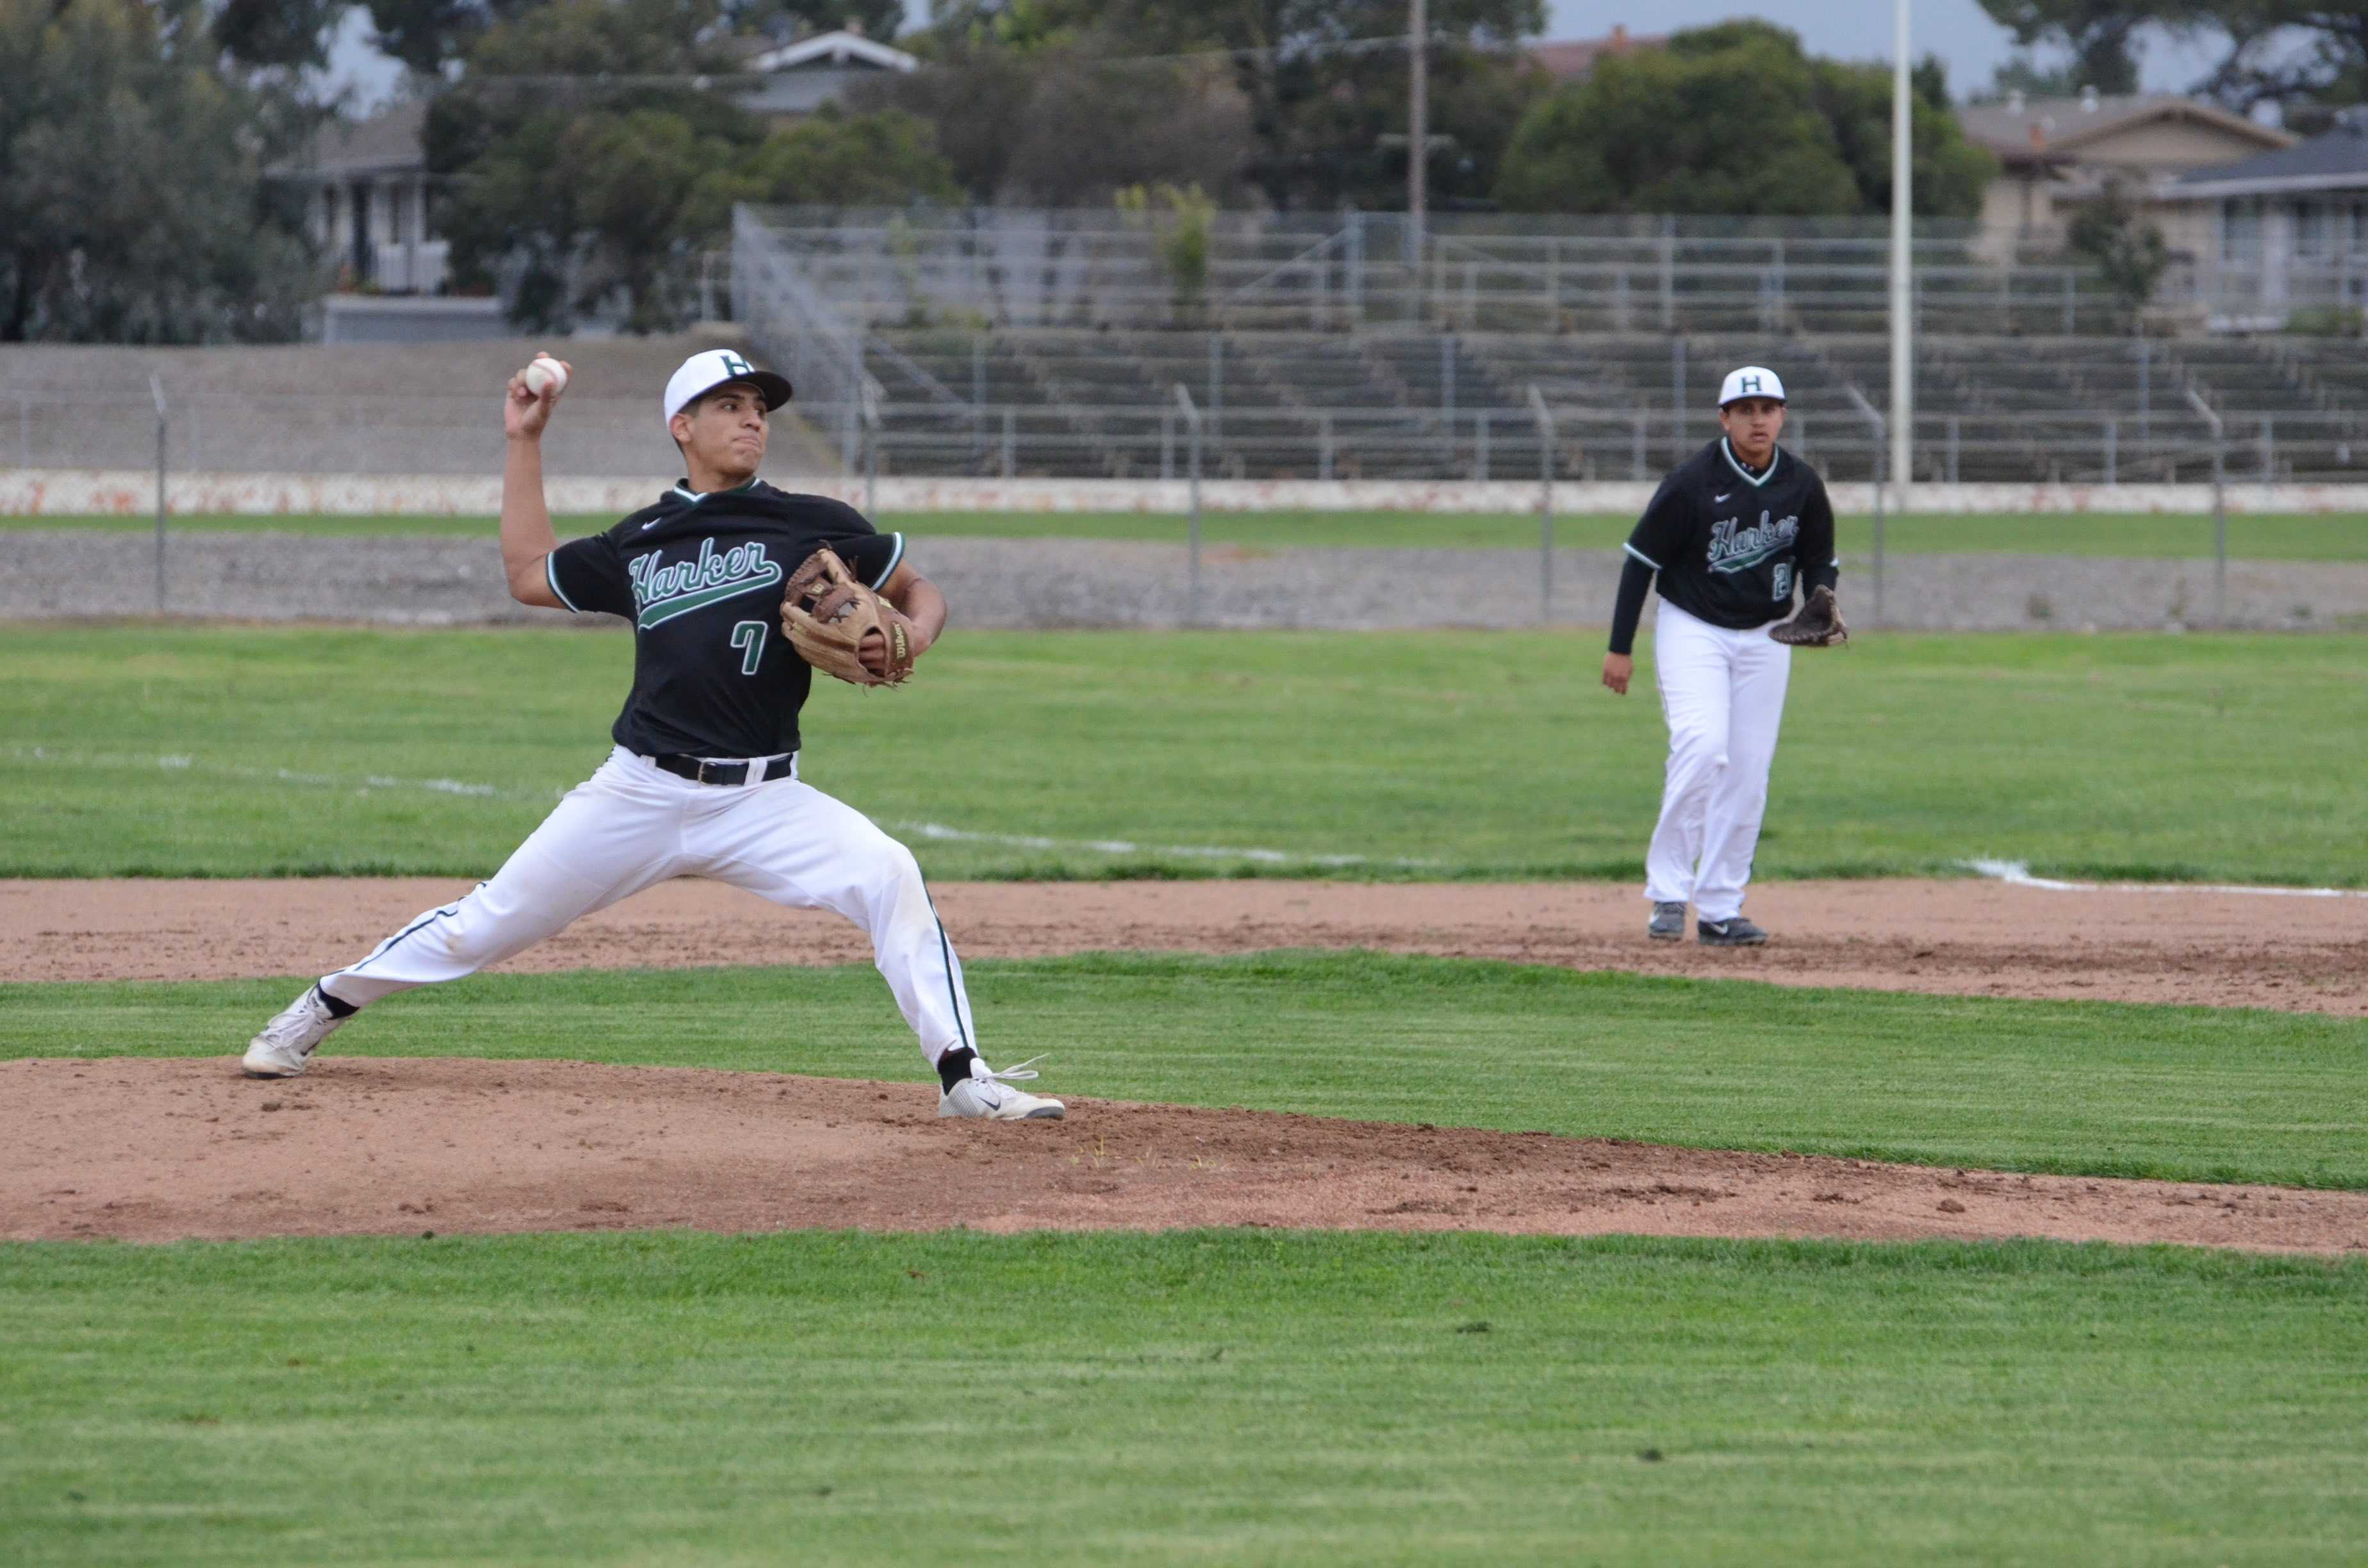 Nate Kelly (10) lunges forward in preparation to throw a pitch during the second inning. Nate was one of three Sophomores to pitch during the game, alongside Akhil Arun and Dominic Cea.